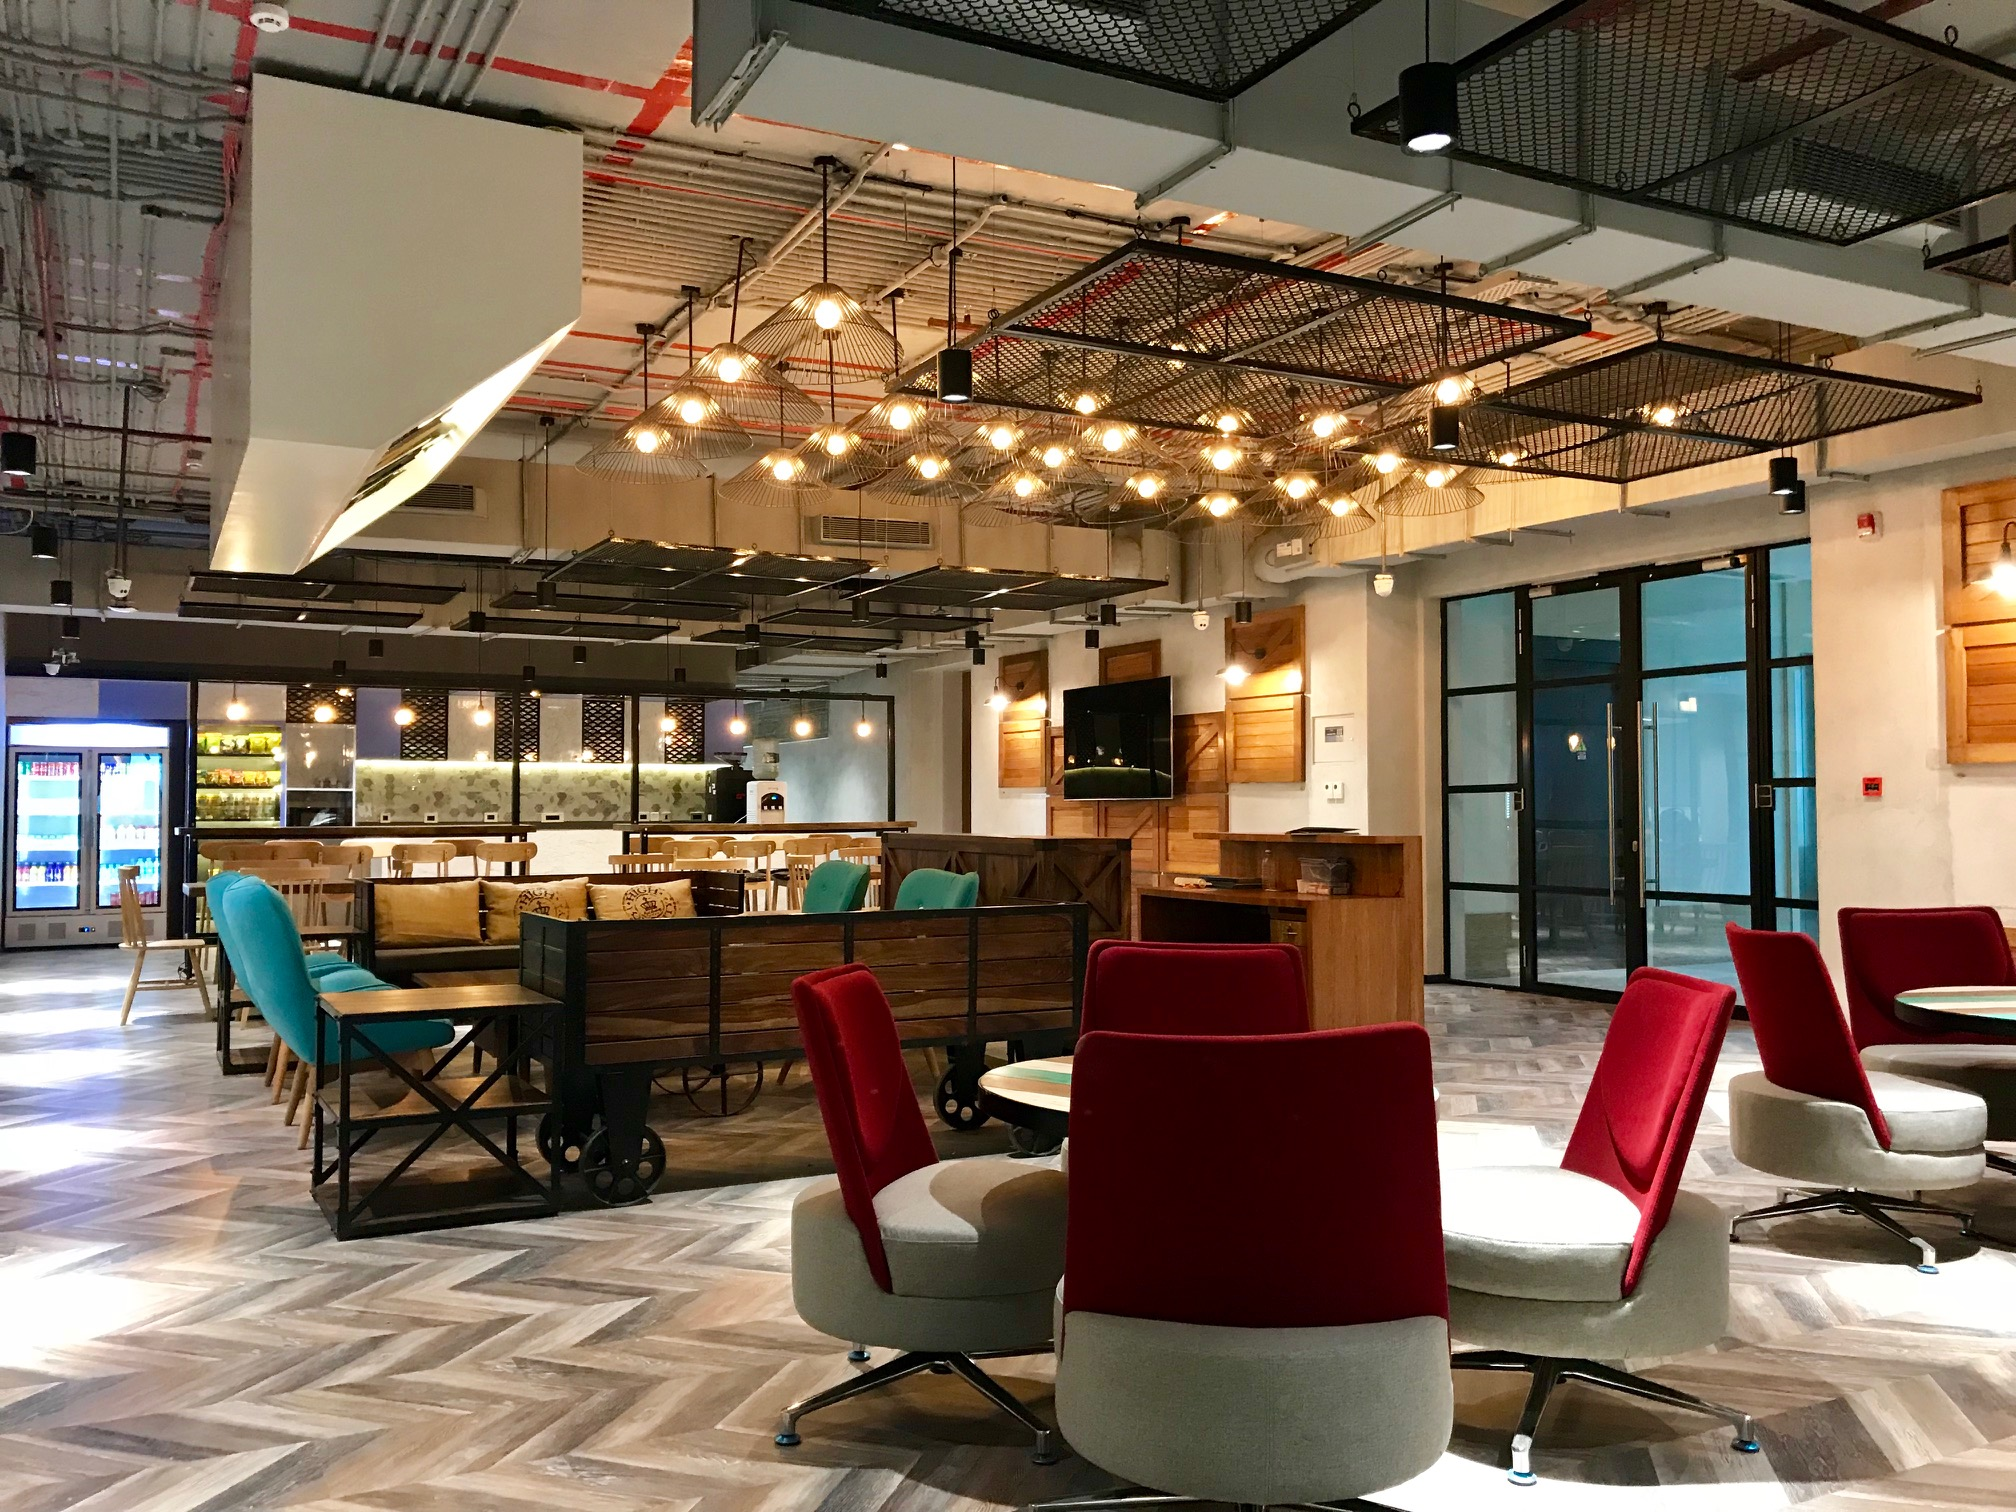 Awfis-co-working-space